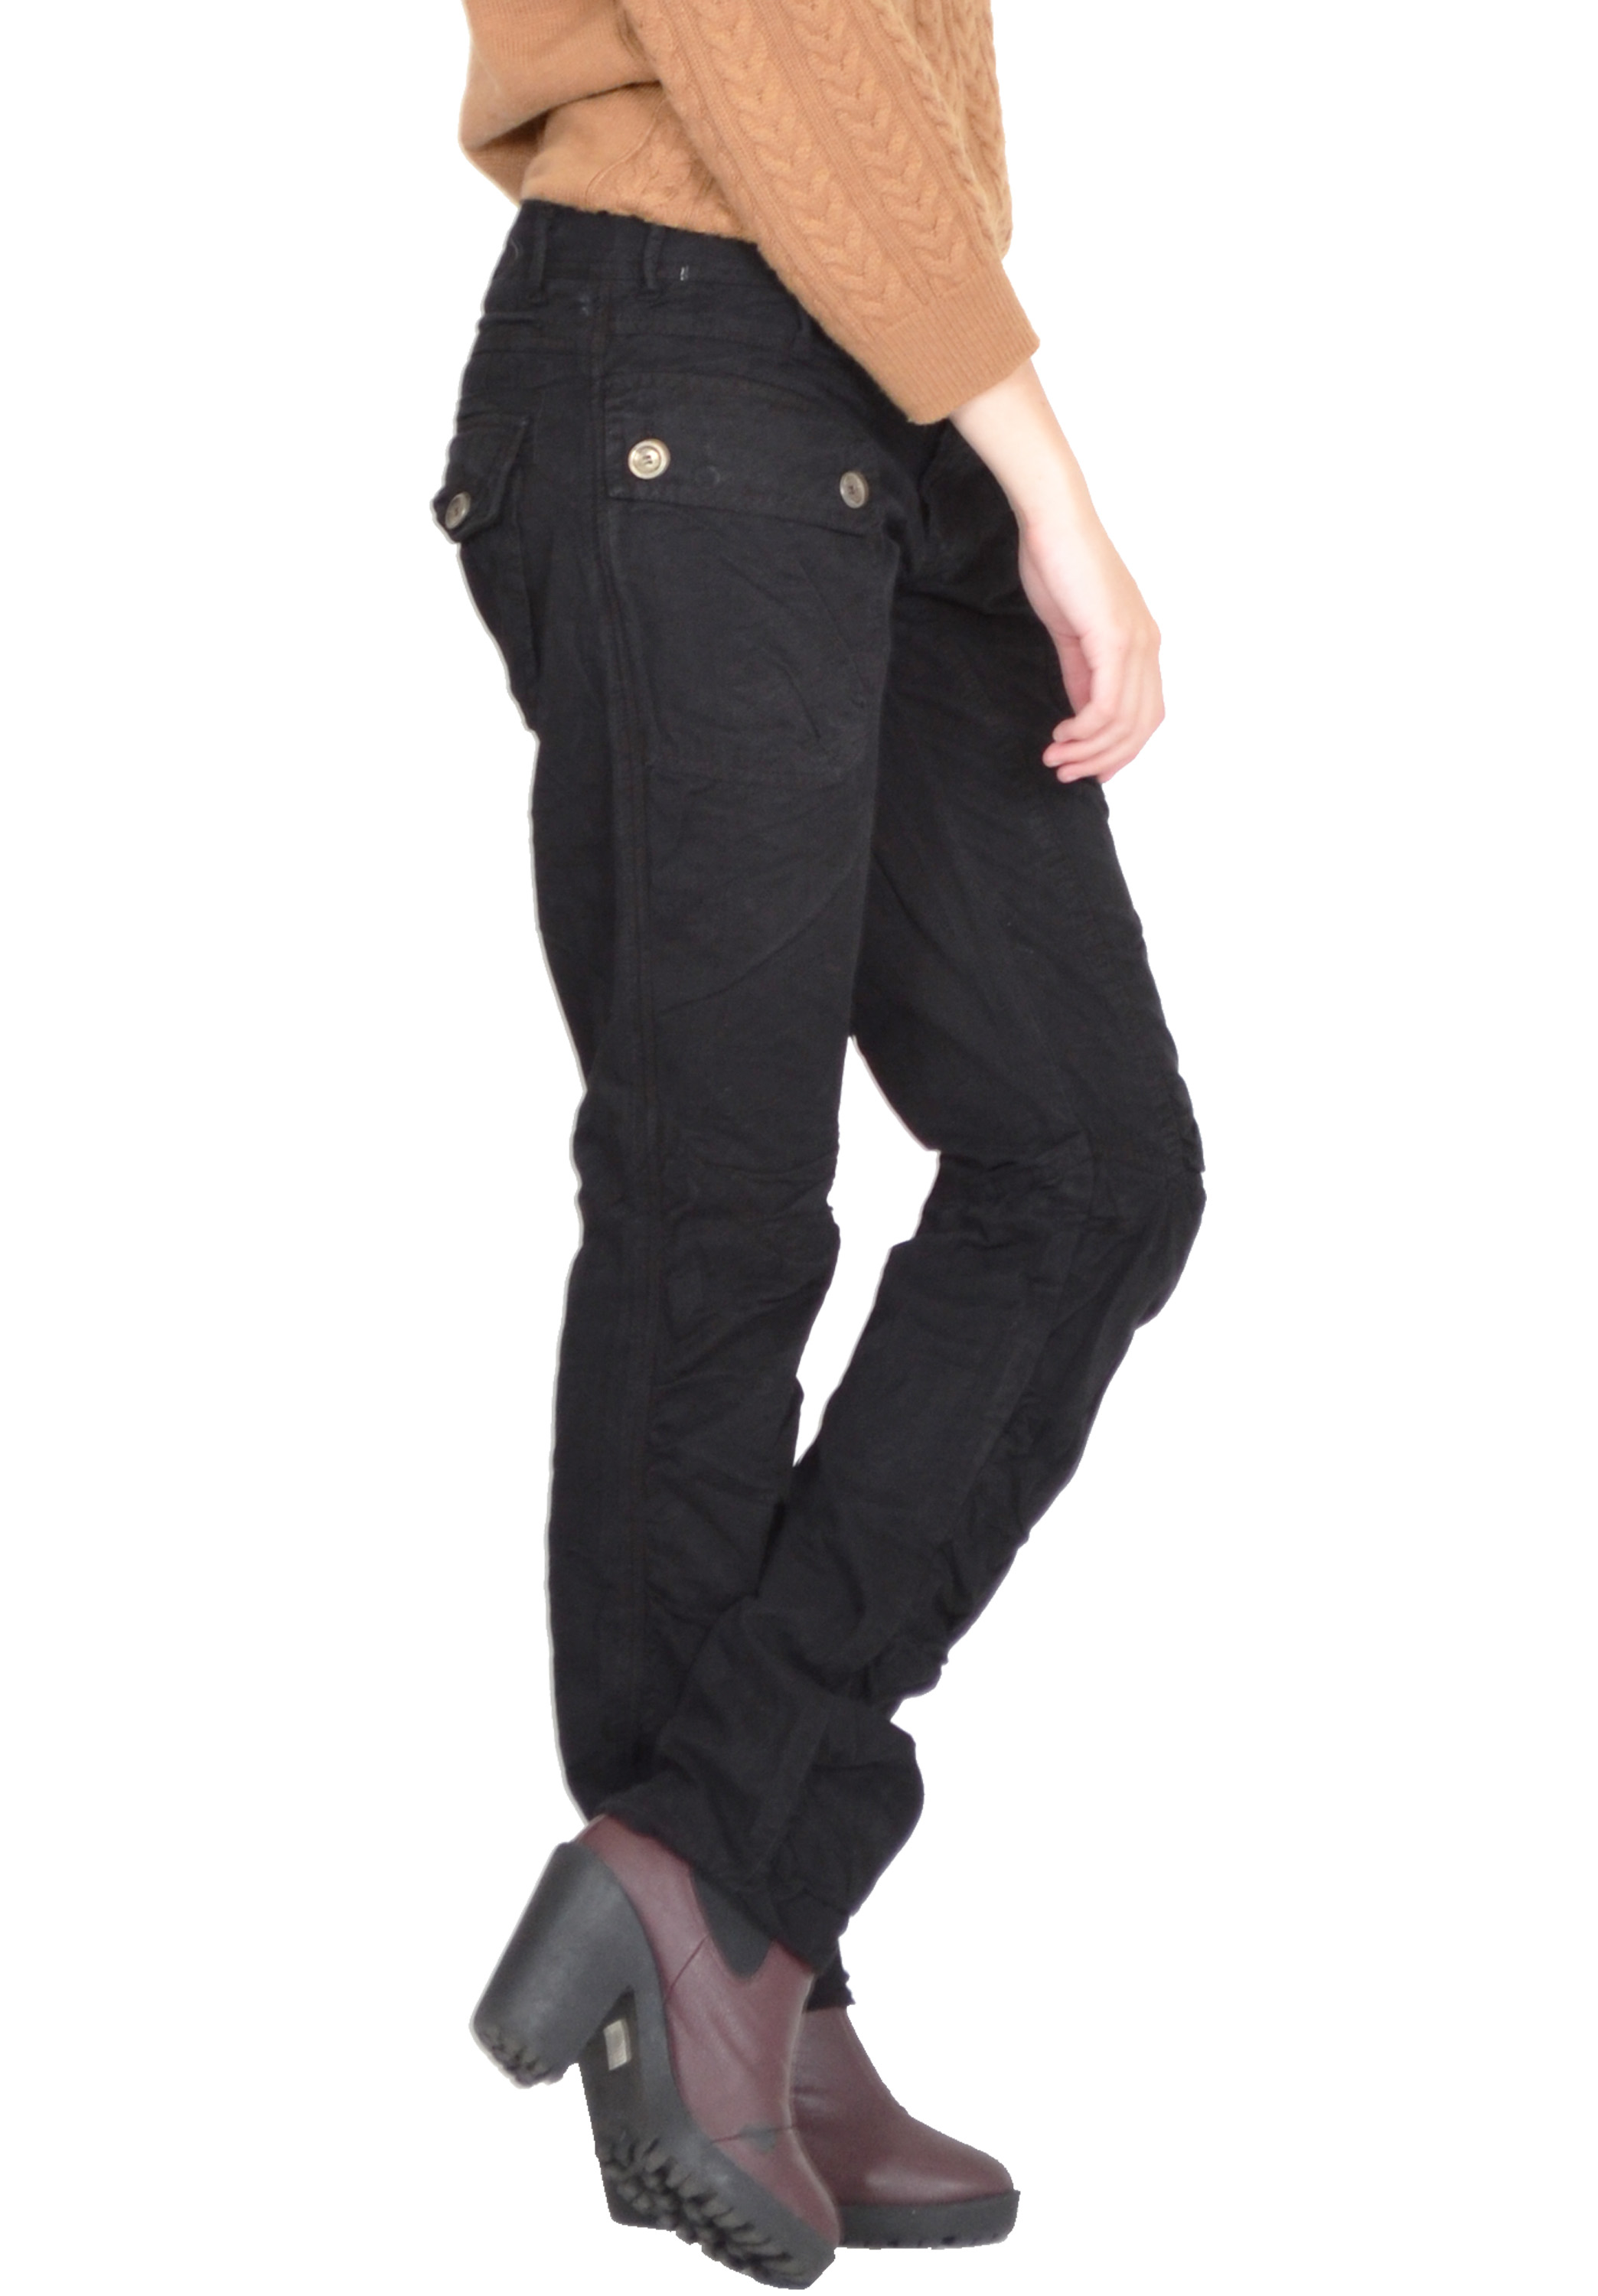 Product Features If you like Docker's Classic D3 pants, you'll love the fit and style of.